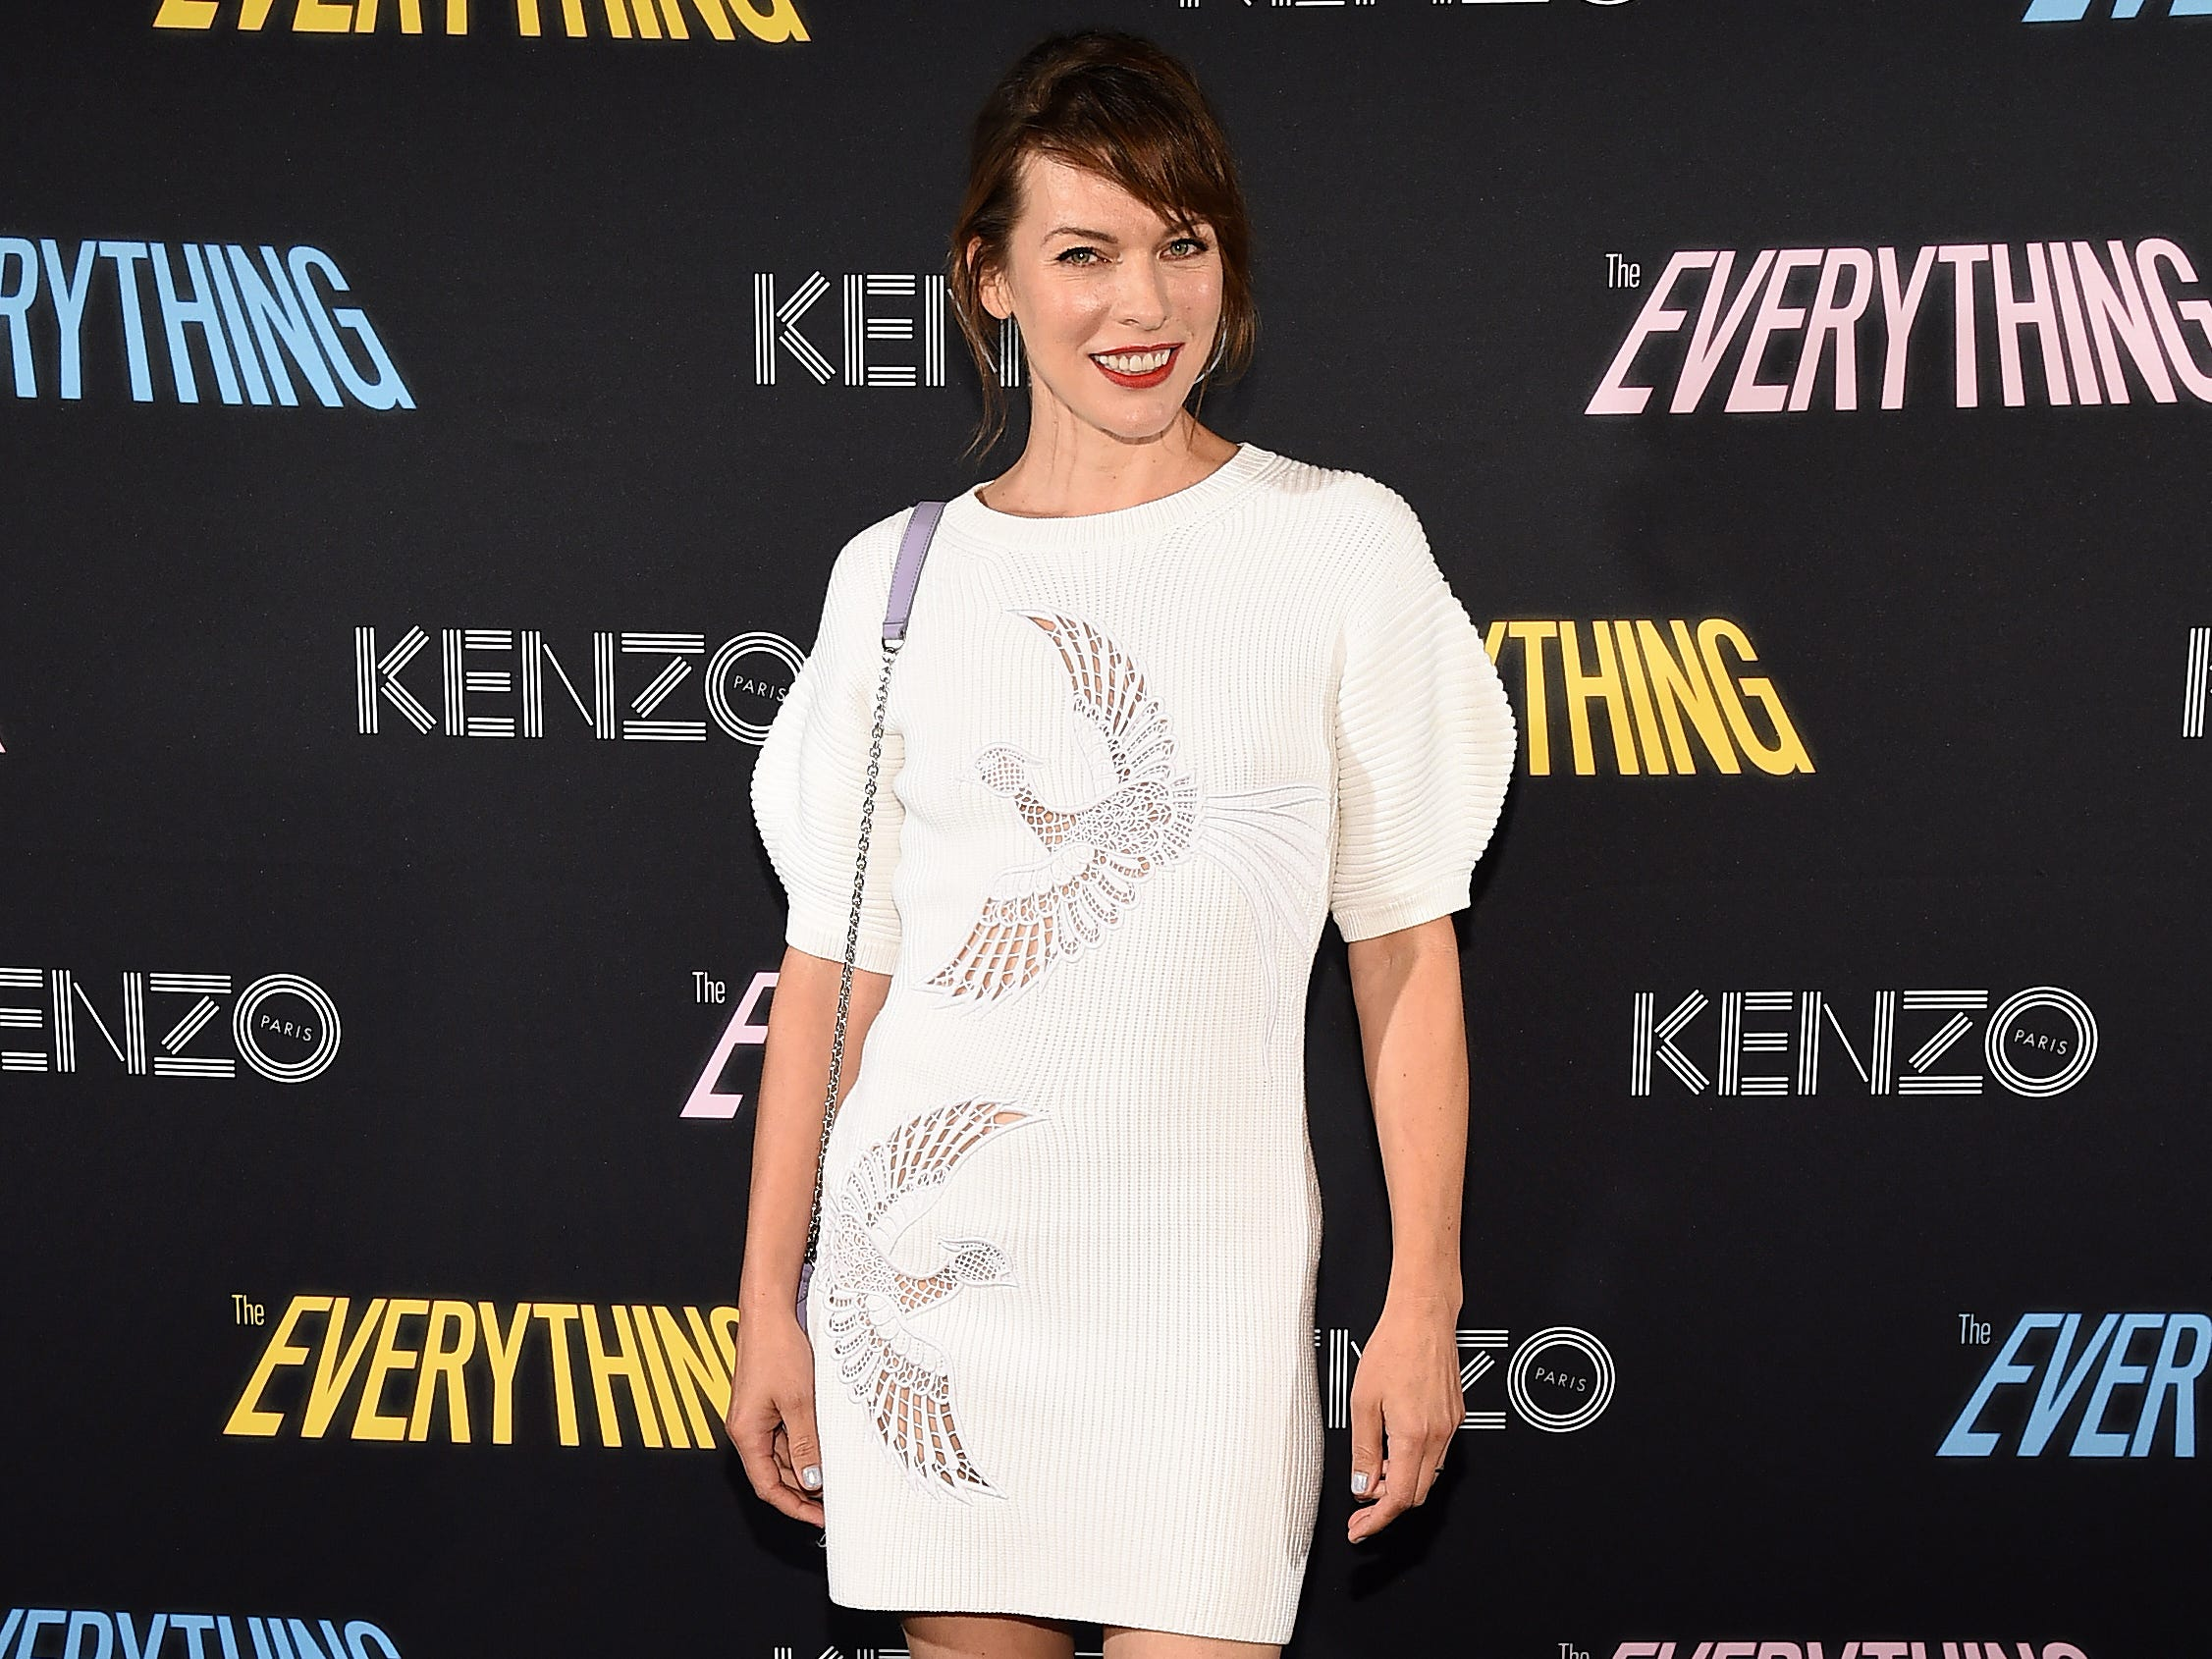 "NEW YORK, NY - SEPTEMBER 07:  Actress Milla Jovovich attends the Premiere of ""The Everything"" A Film By Humberto Leon For KENZO on September 7, 2018 in New York City.  (Photo by Ilya S. Savenok/Getty Images for KENZO) ORG XMIT: 775199226 ORIG FILE ID: 1028968182"